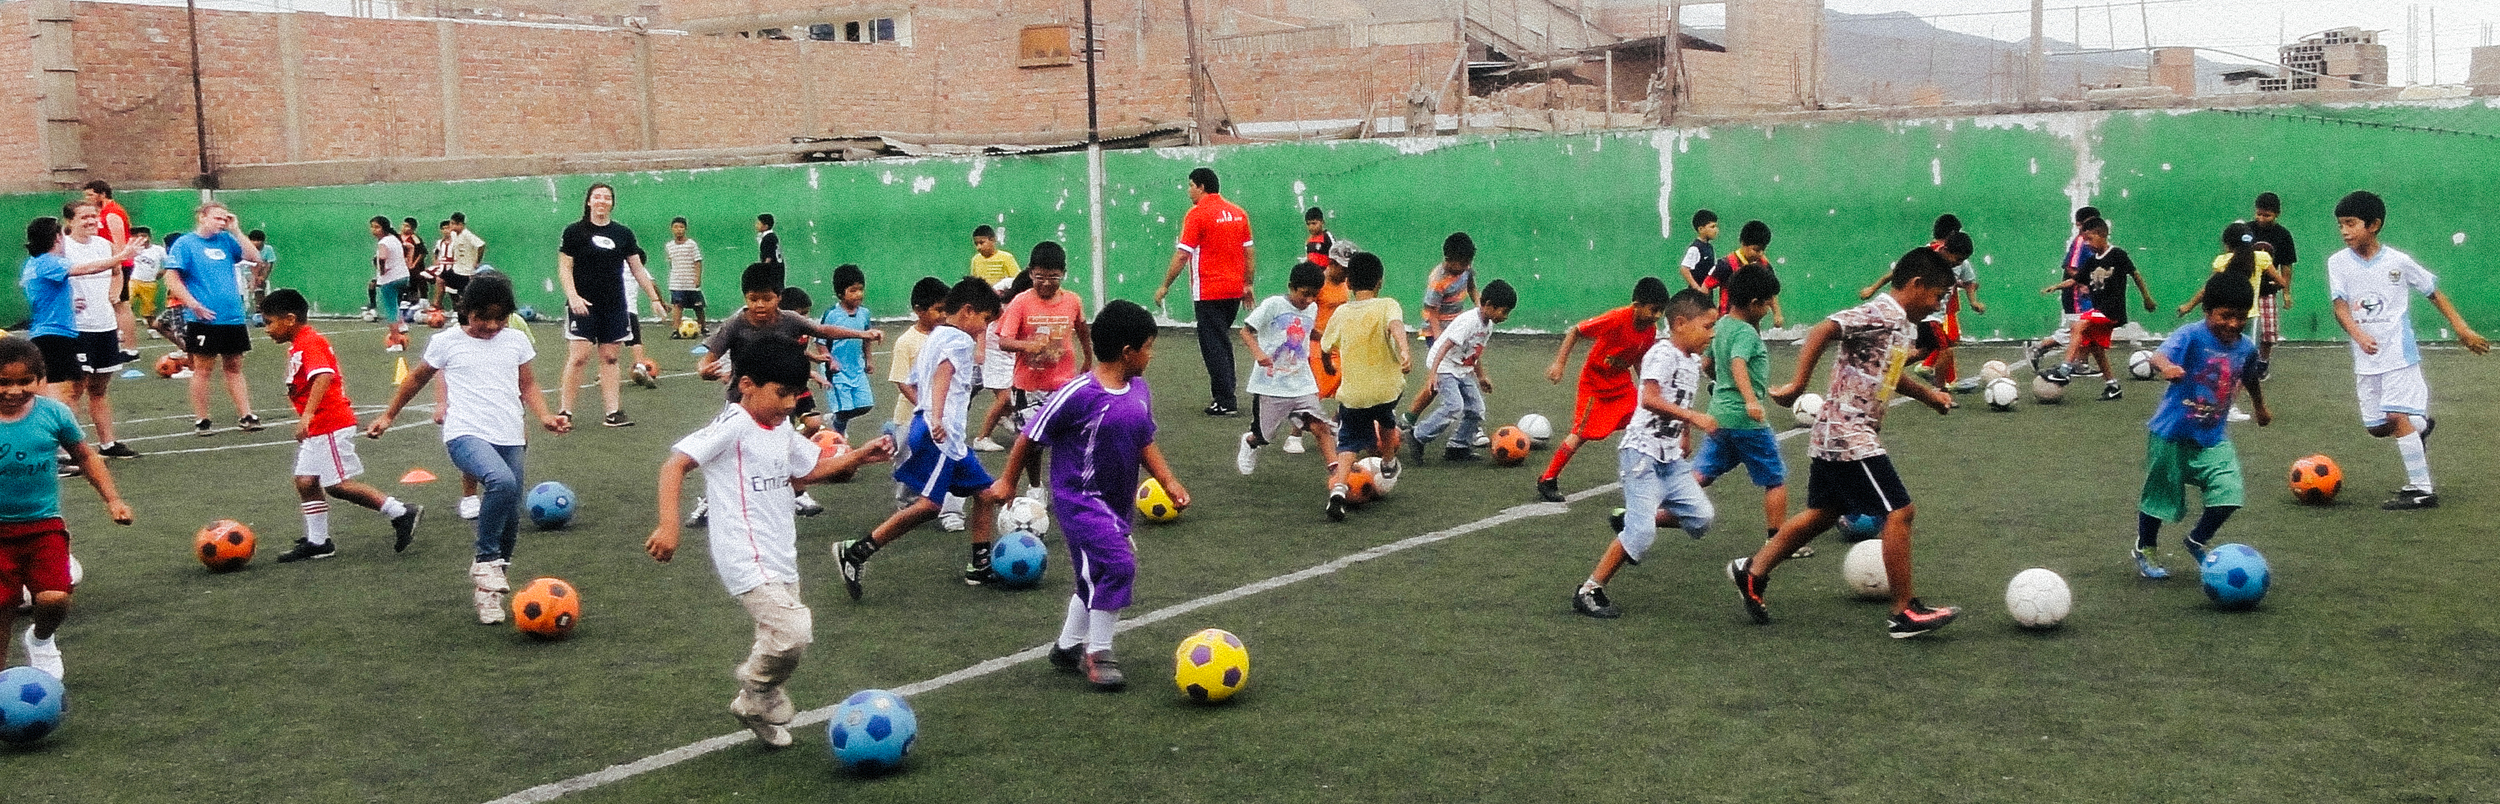 Iconium Strategies partners with Sport Aid & Communities for Life in Manchay, Peru